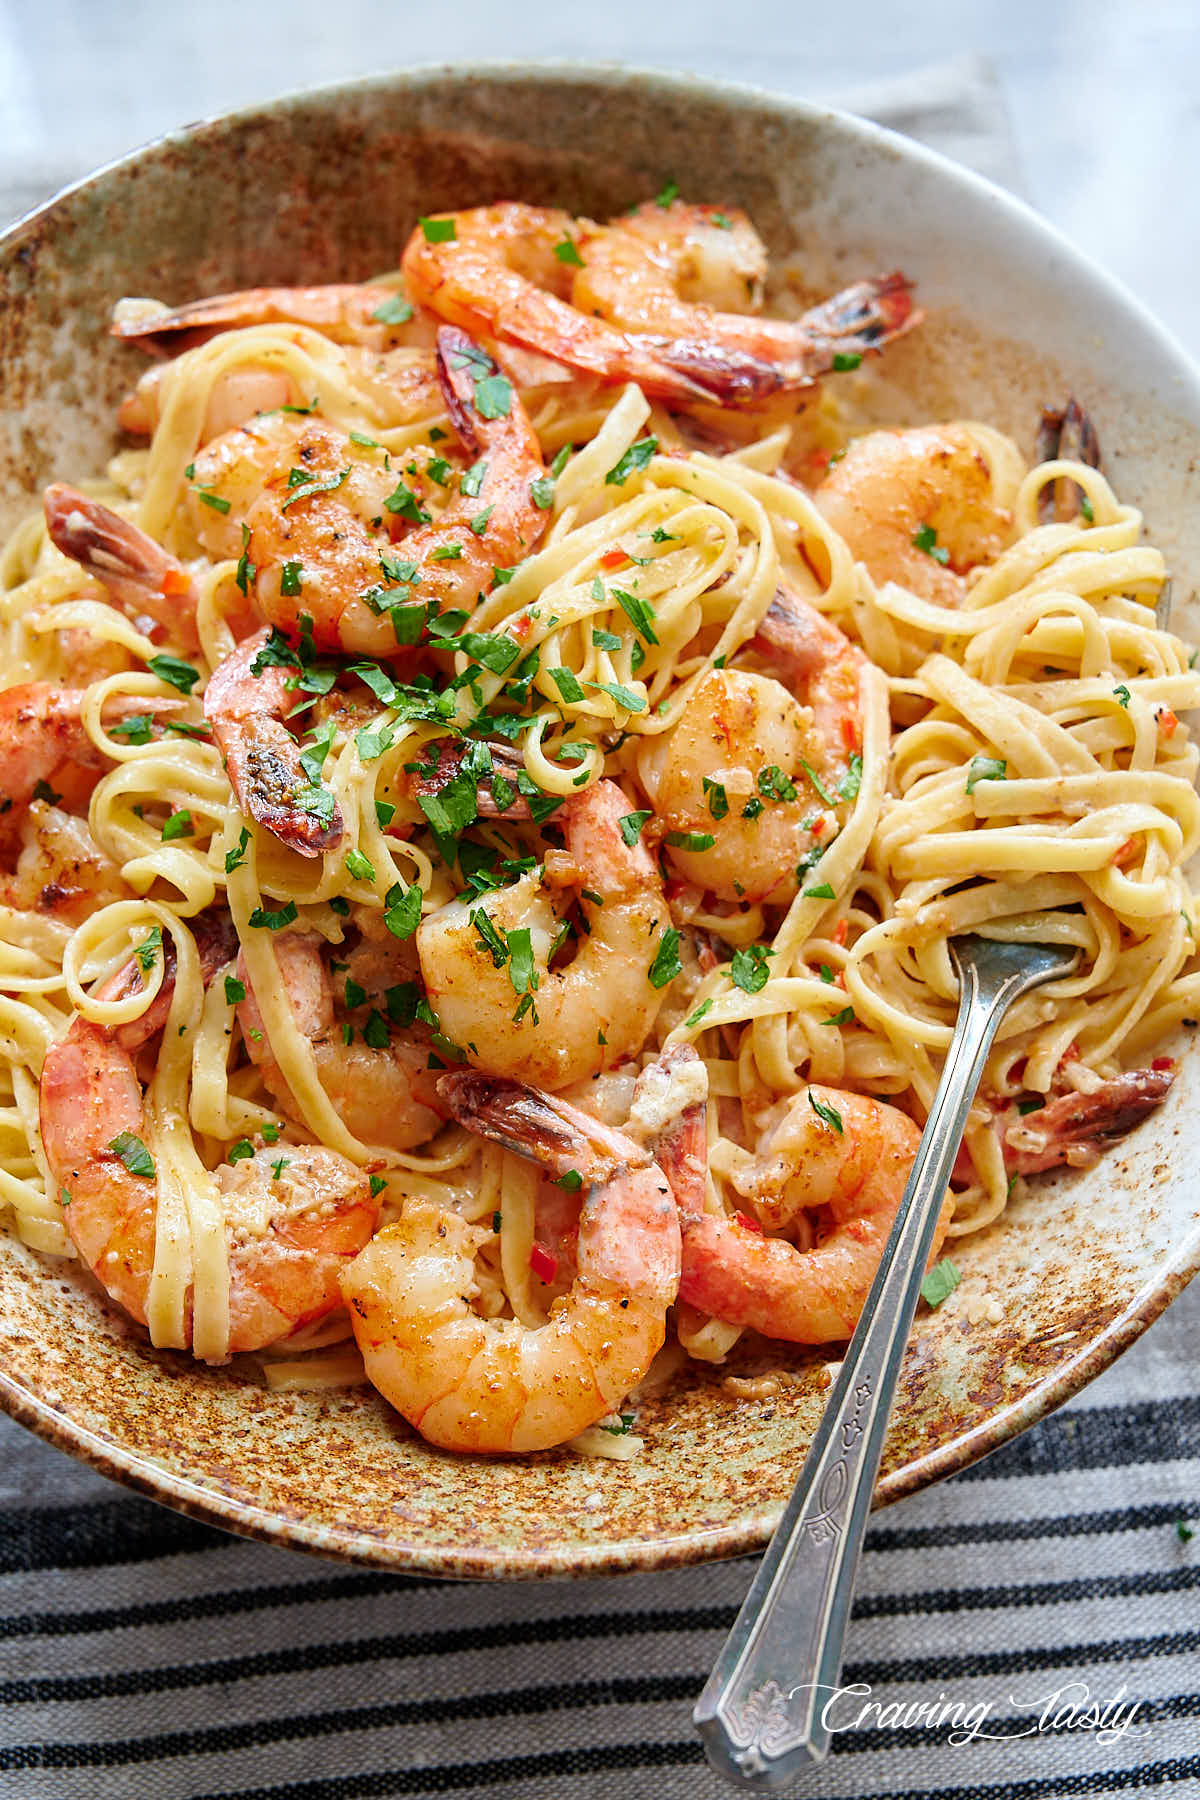 Garlic butter shrimp and pasta in a bowl garnished with parsley.